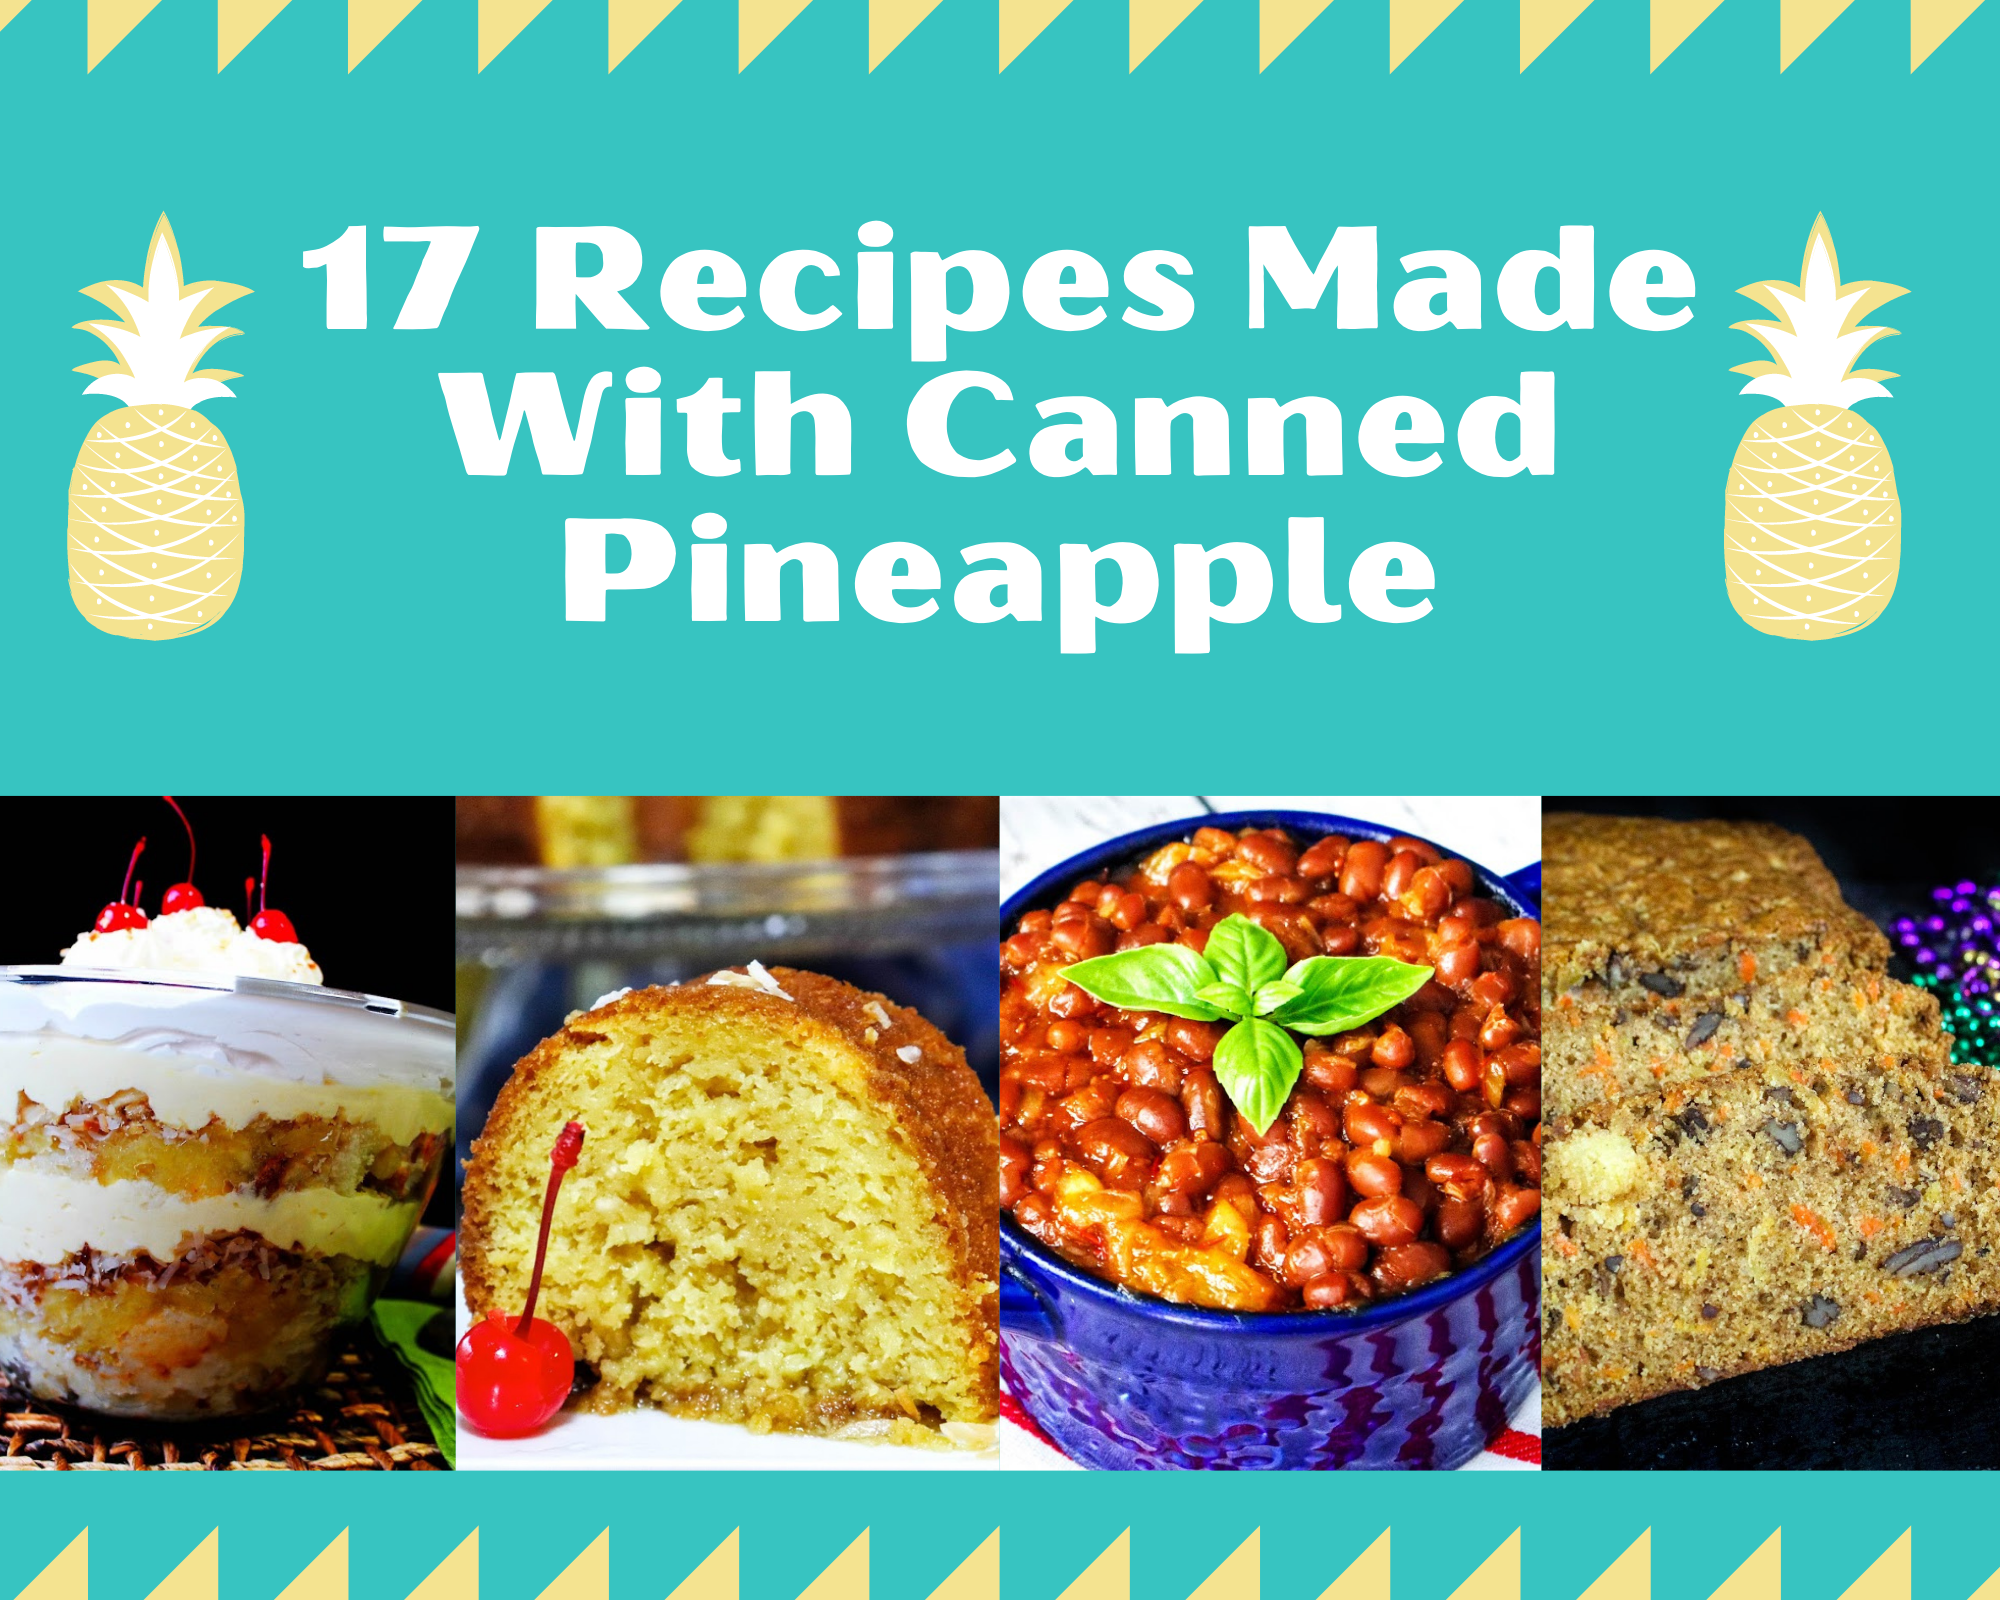 Recipes made with canned pineapple